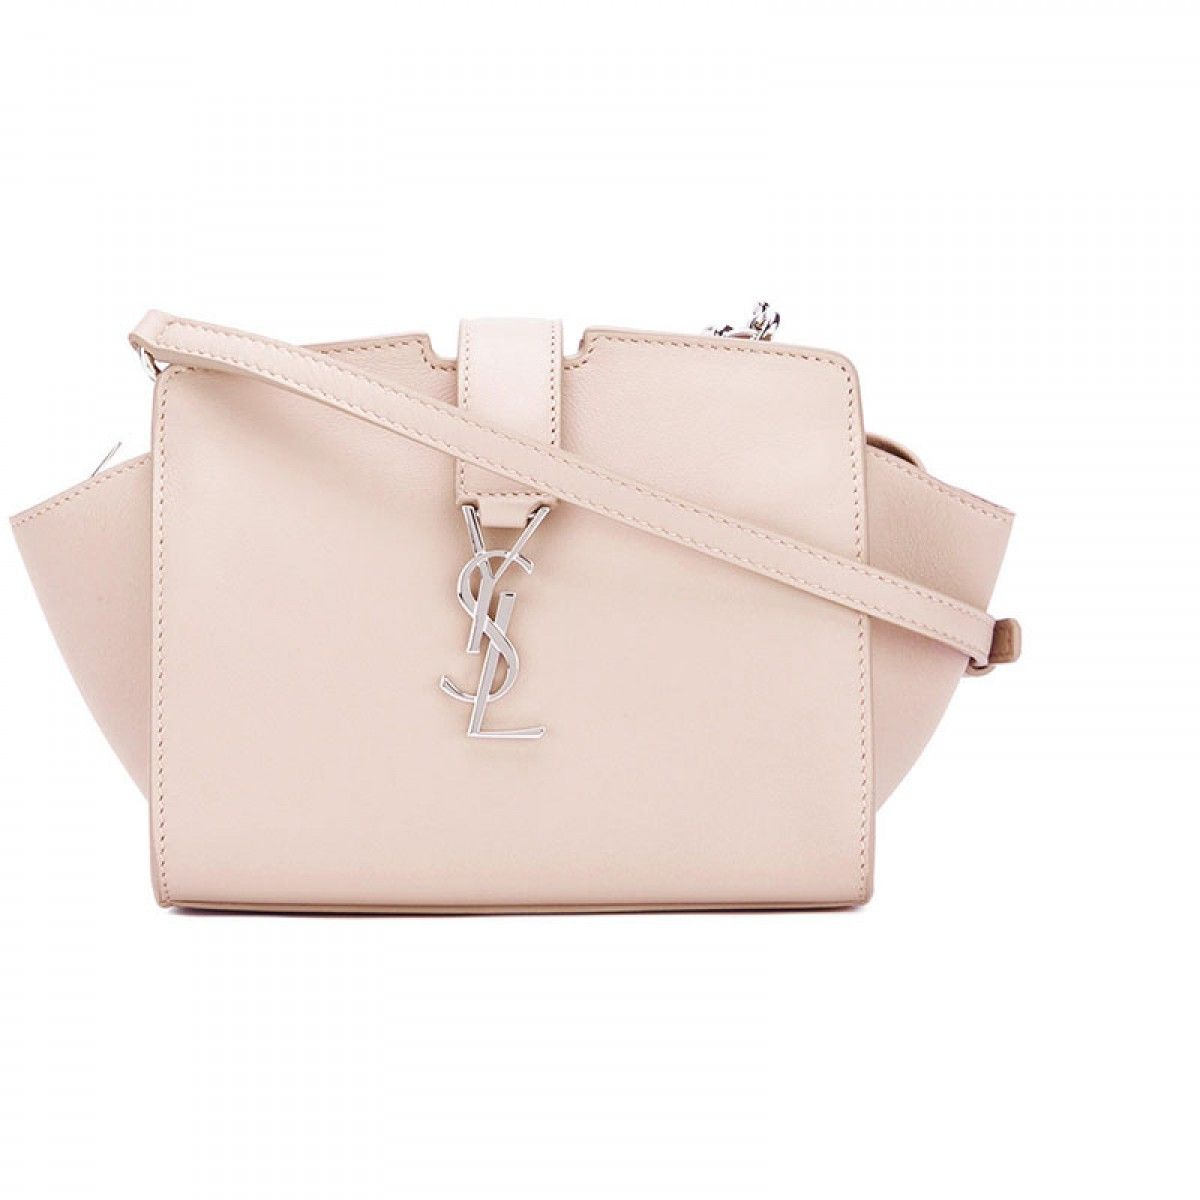 8b2d99699450 Saint Laurent Toy Cabas Bag In Leather Pink in 2019